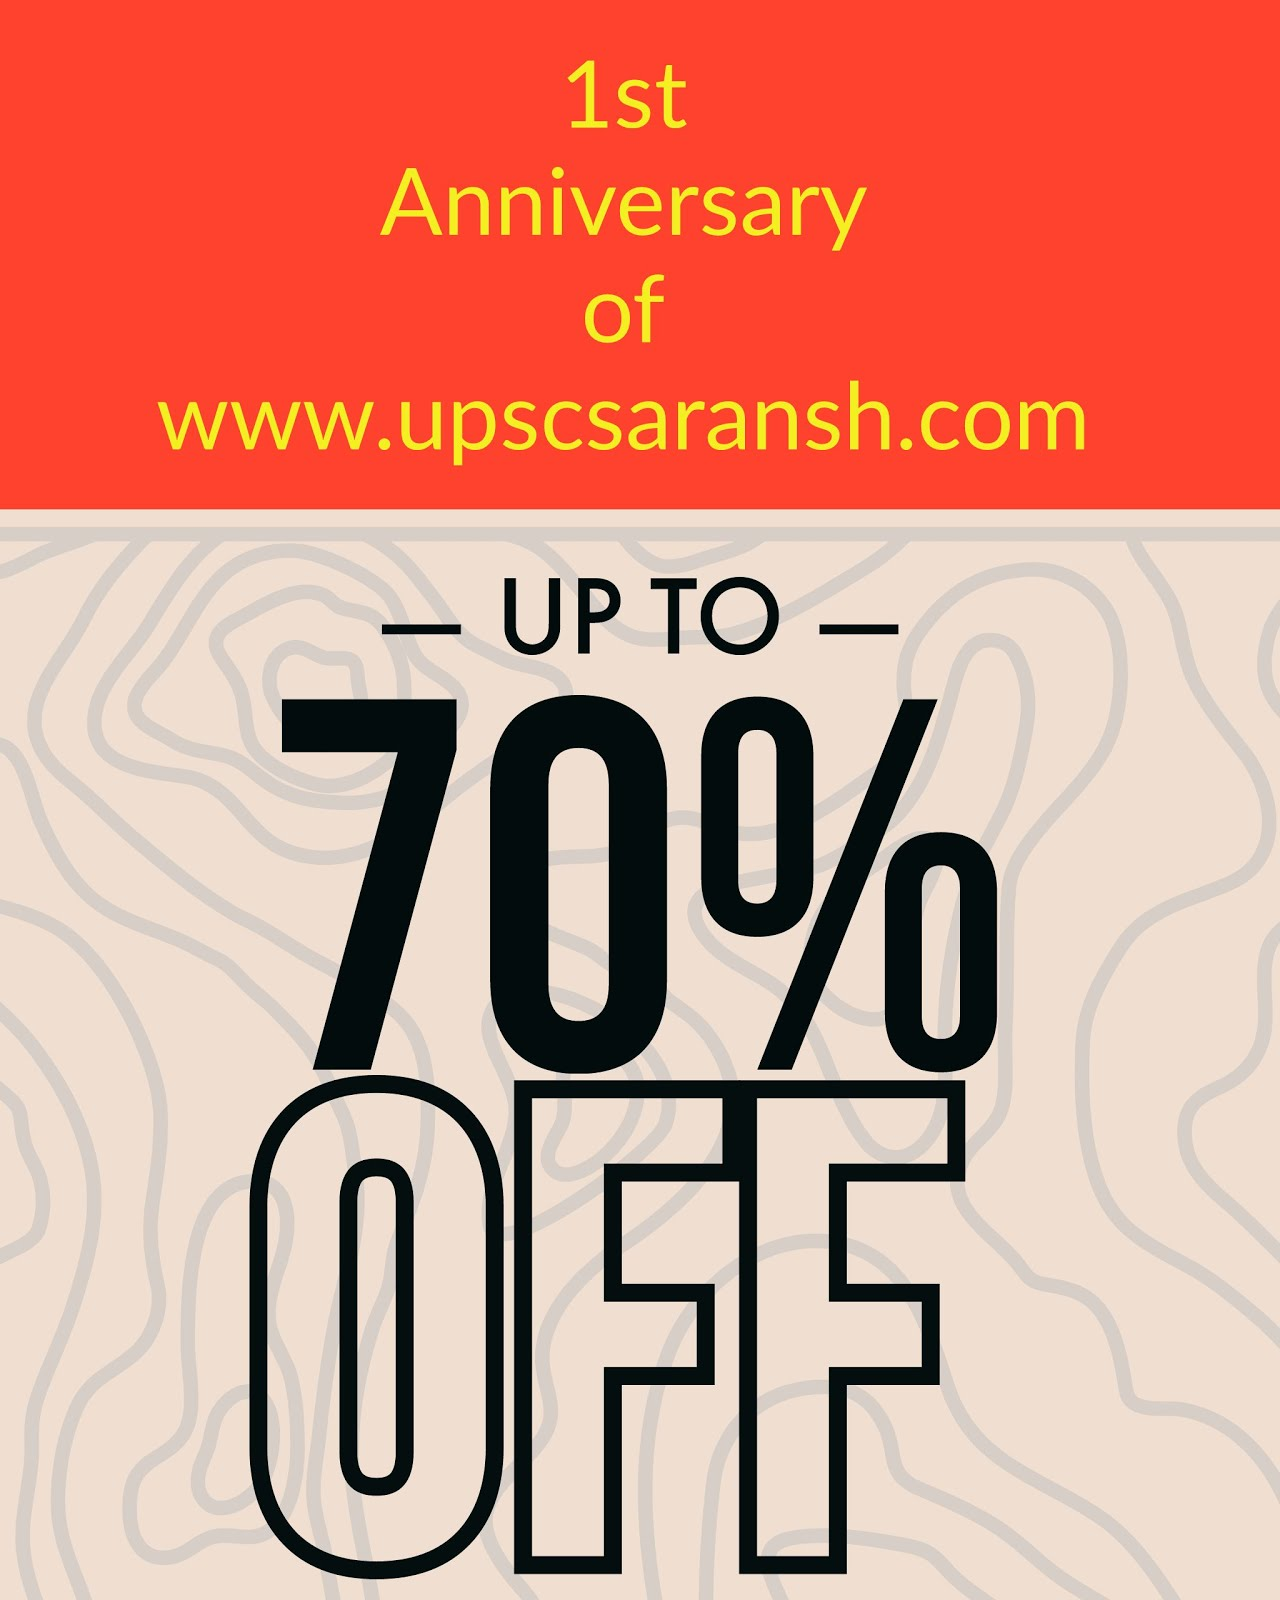 eBook price off on 1st anniversary